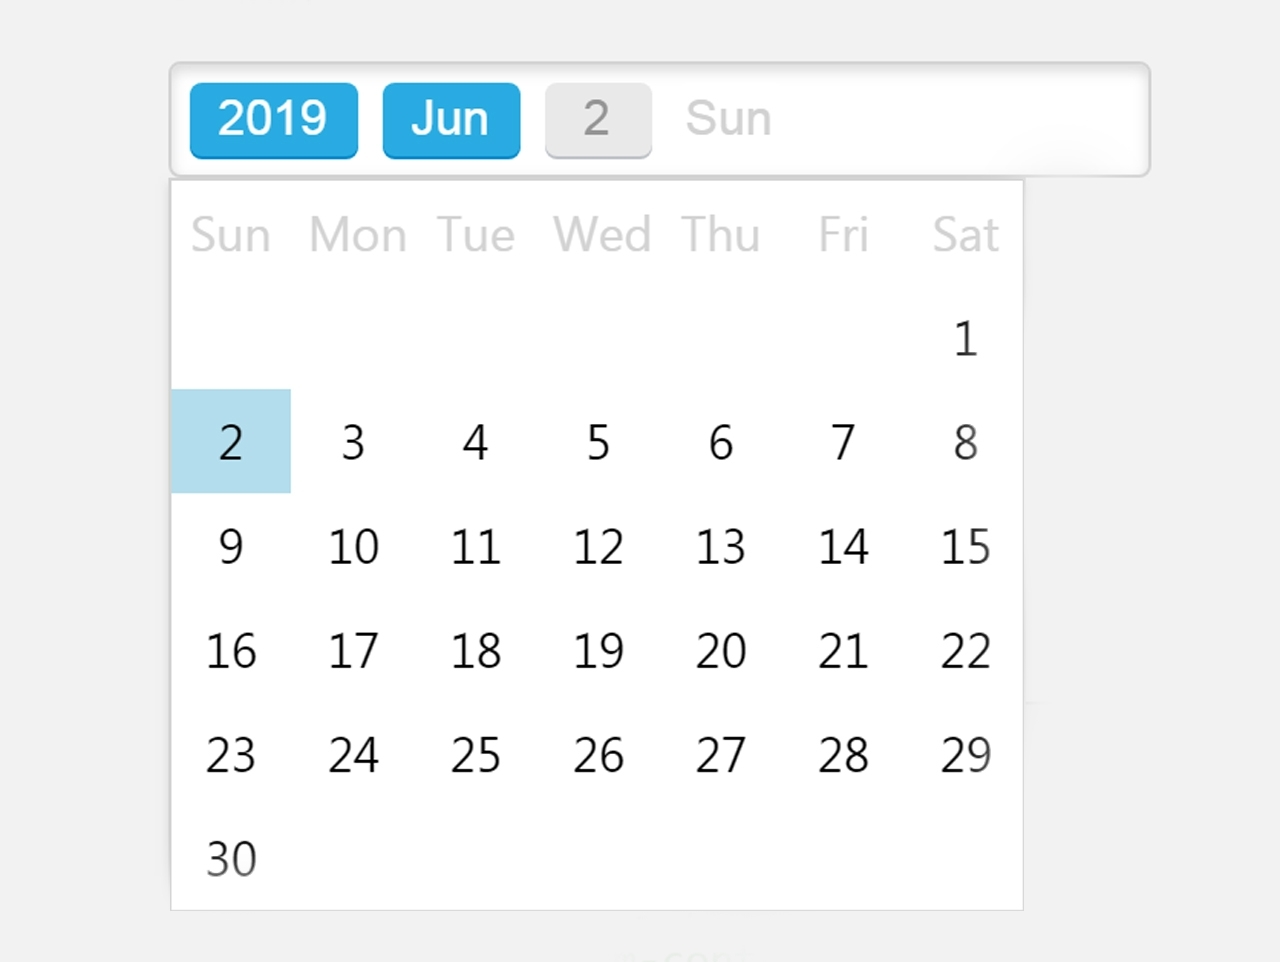 Jquery Datepicker For Bootstrap 4 - Wbn Datepicker — Codehim